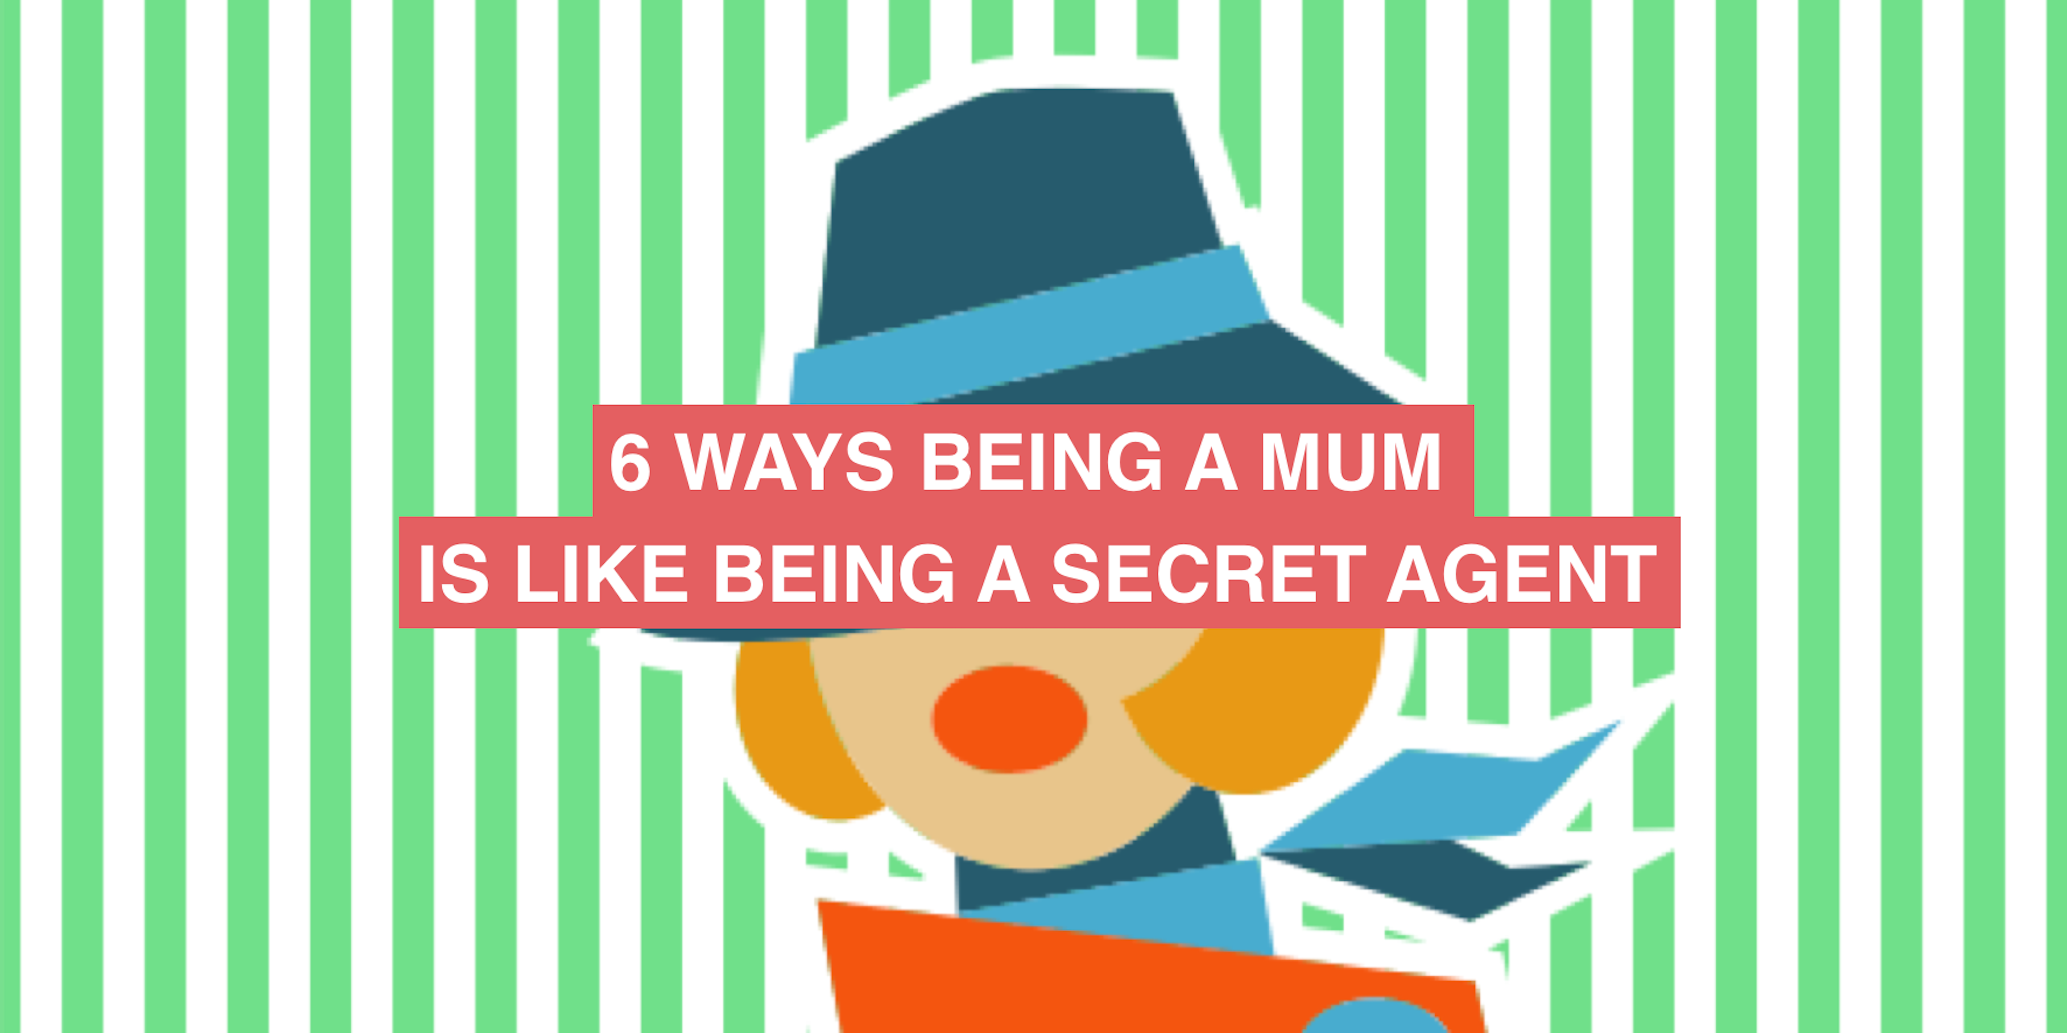 6 ways being a mum is like being a secret agent